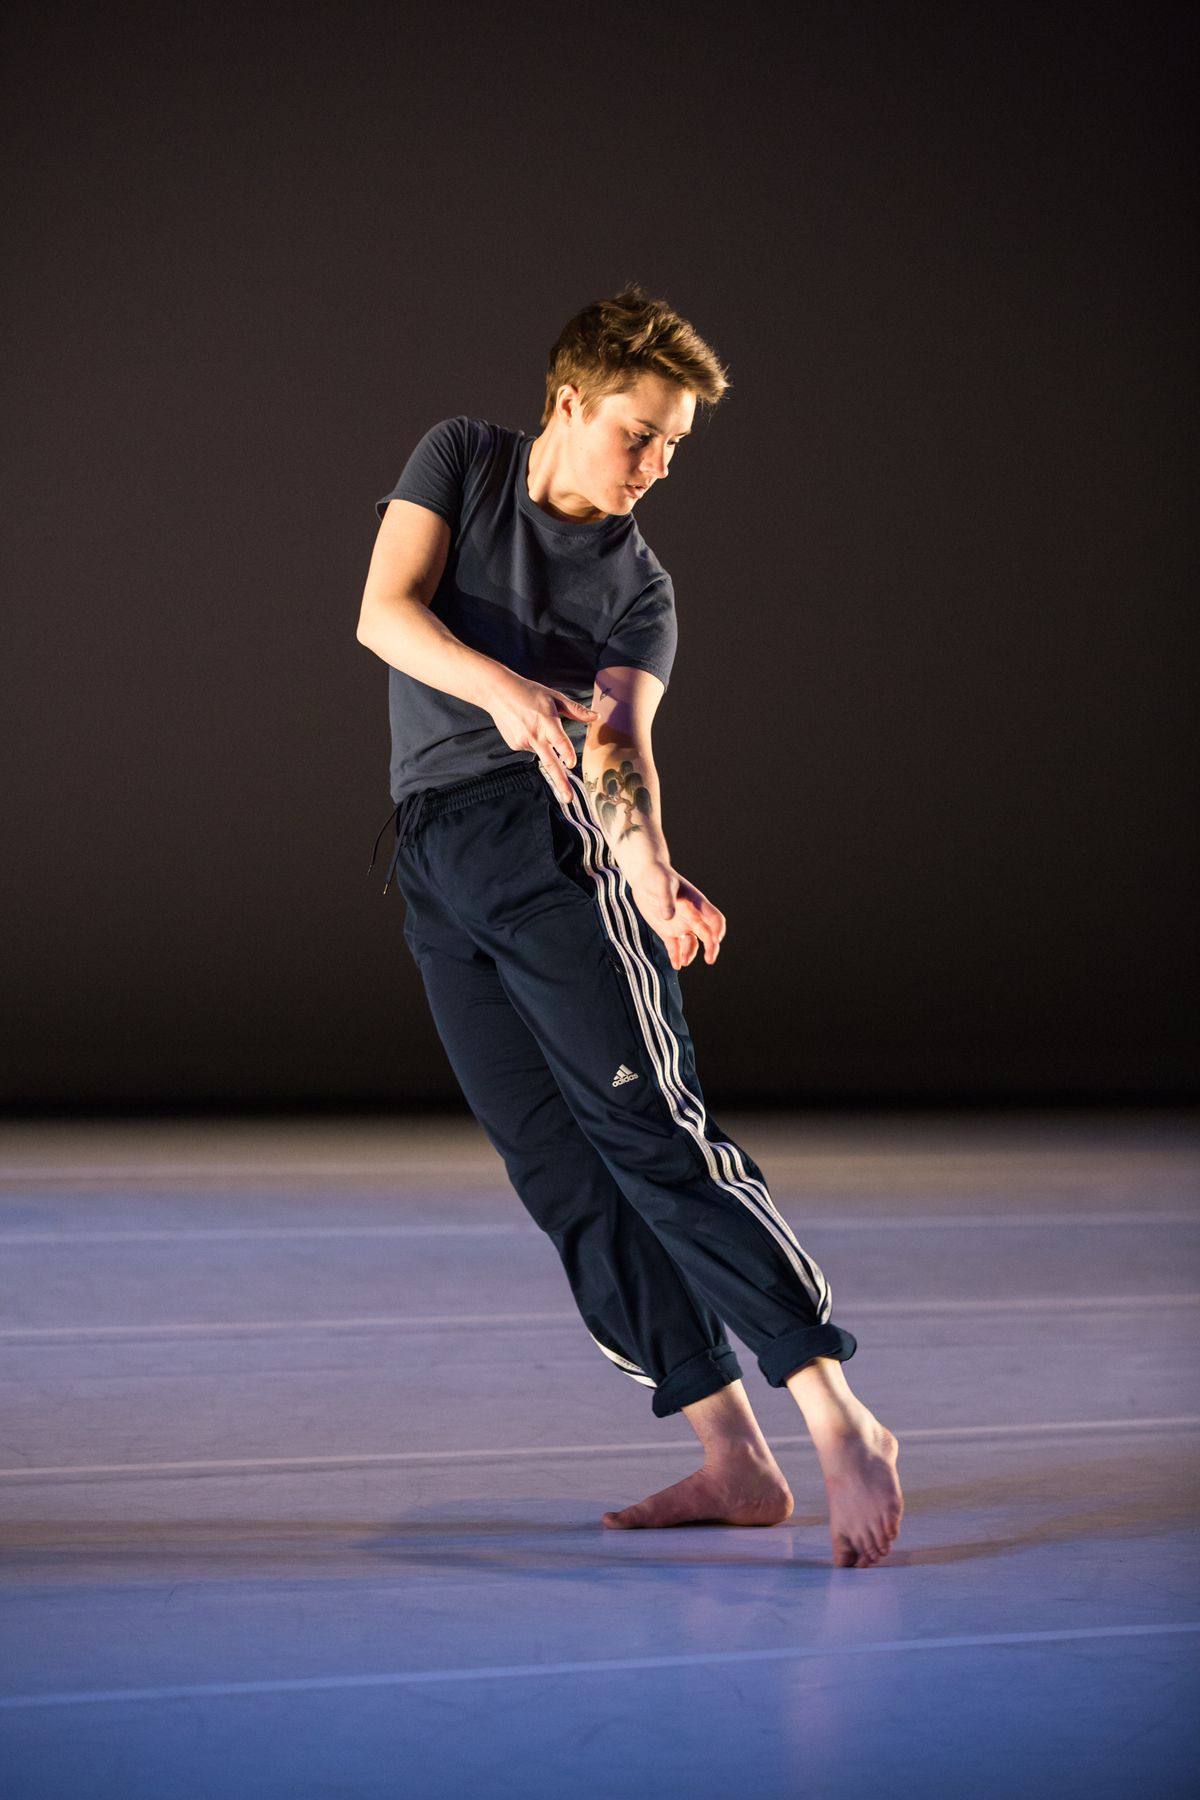 """Molly Shanahan/Mad Shak presents the world premiere of Molly Shanahan's ensemble dance """"Of Whales, Time, and Your Last Attempt to Reach Me"""" at The Dance Center of Columbia College Chicago.  """